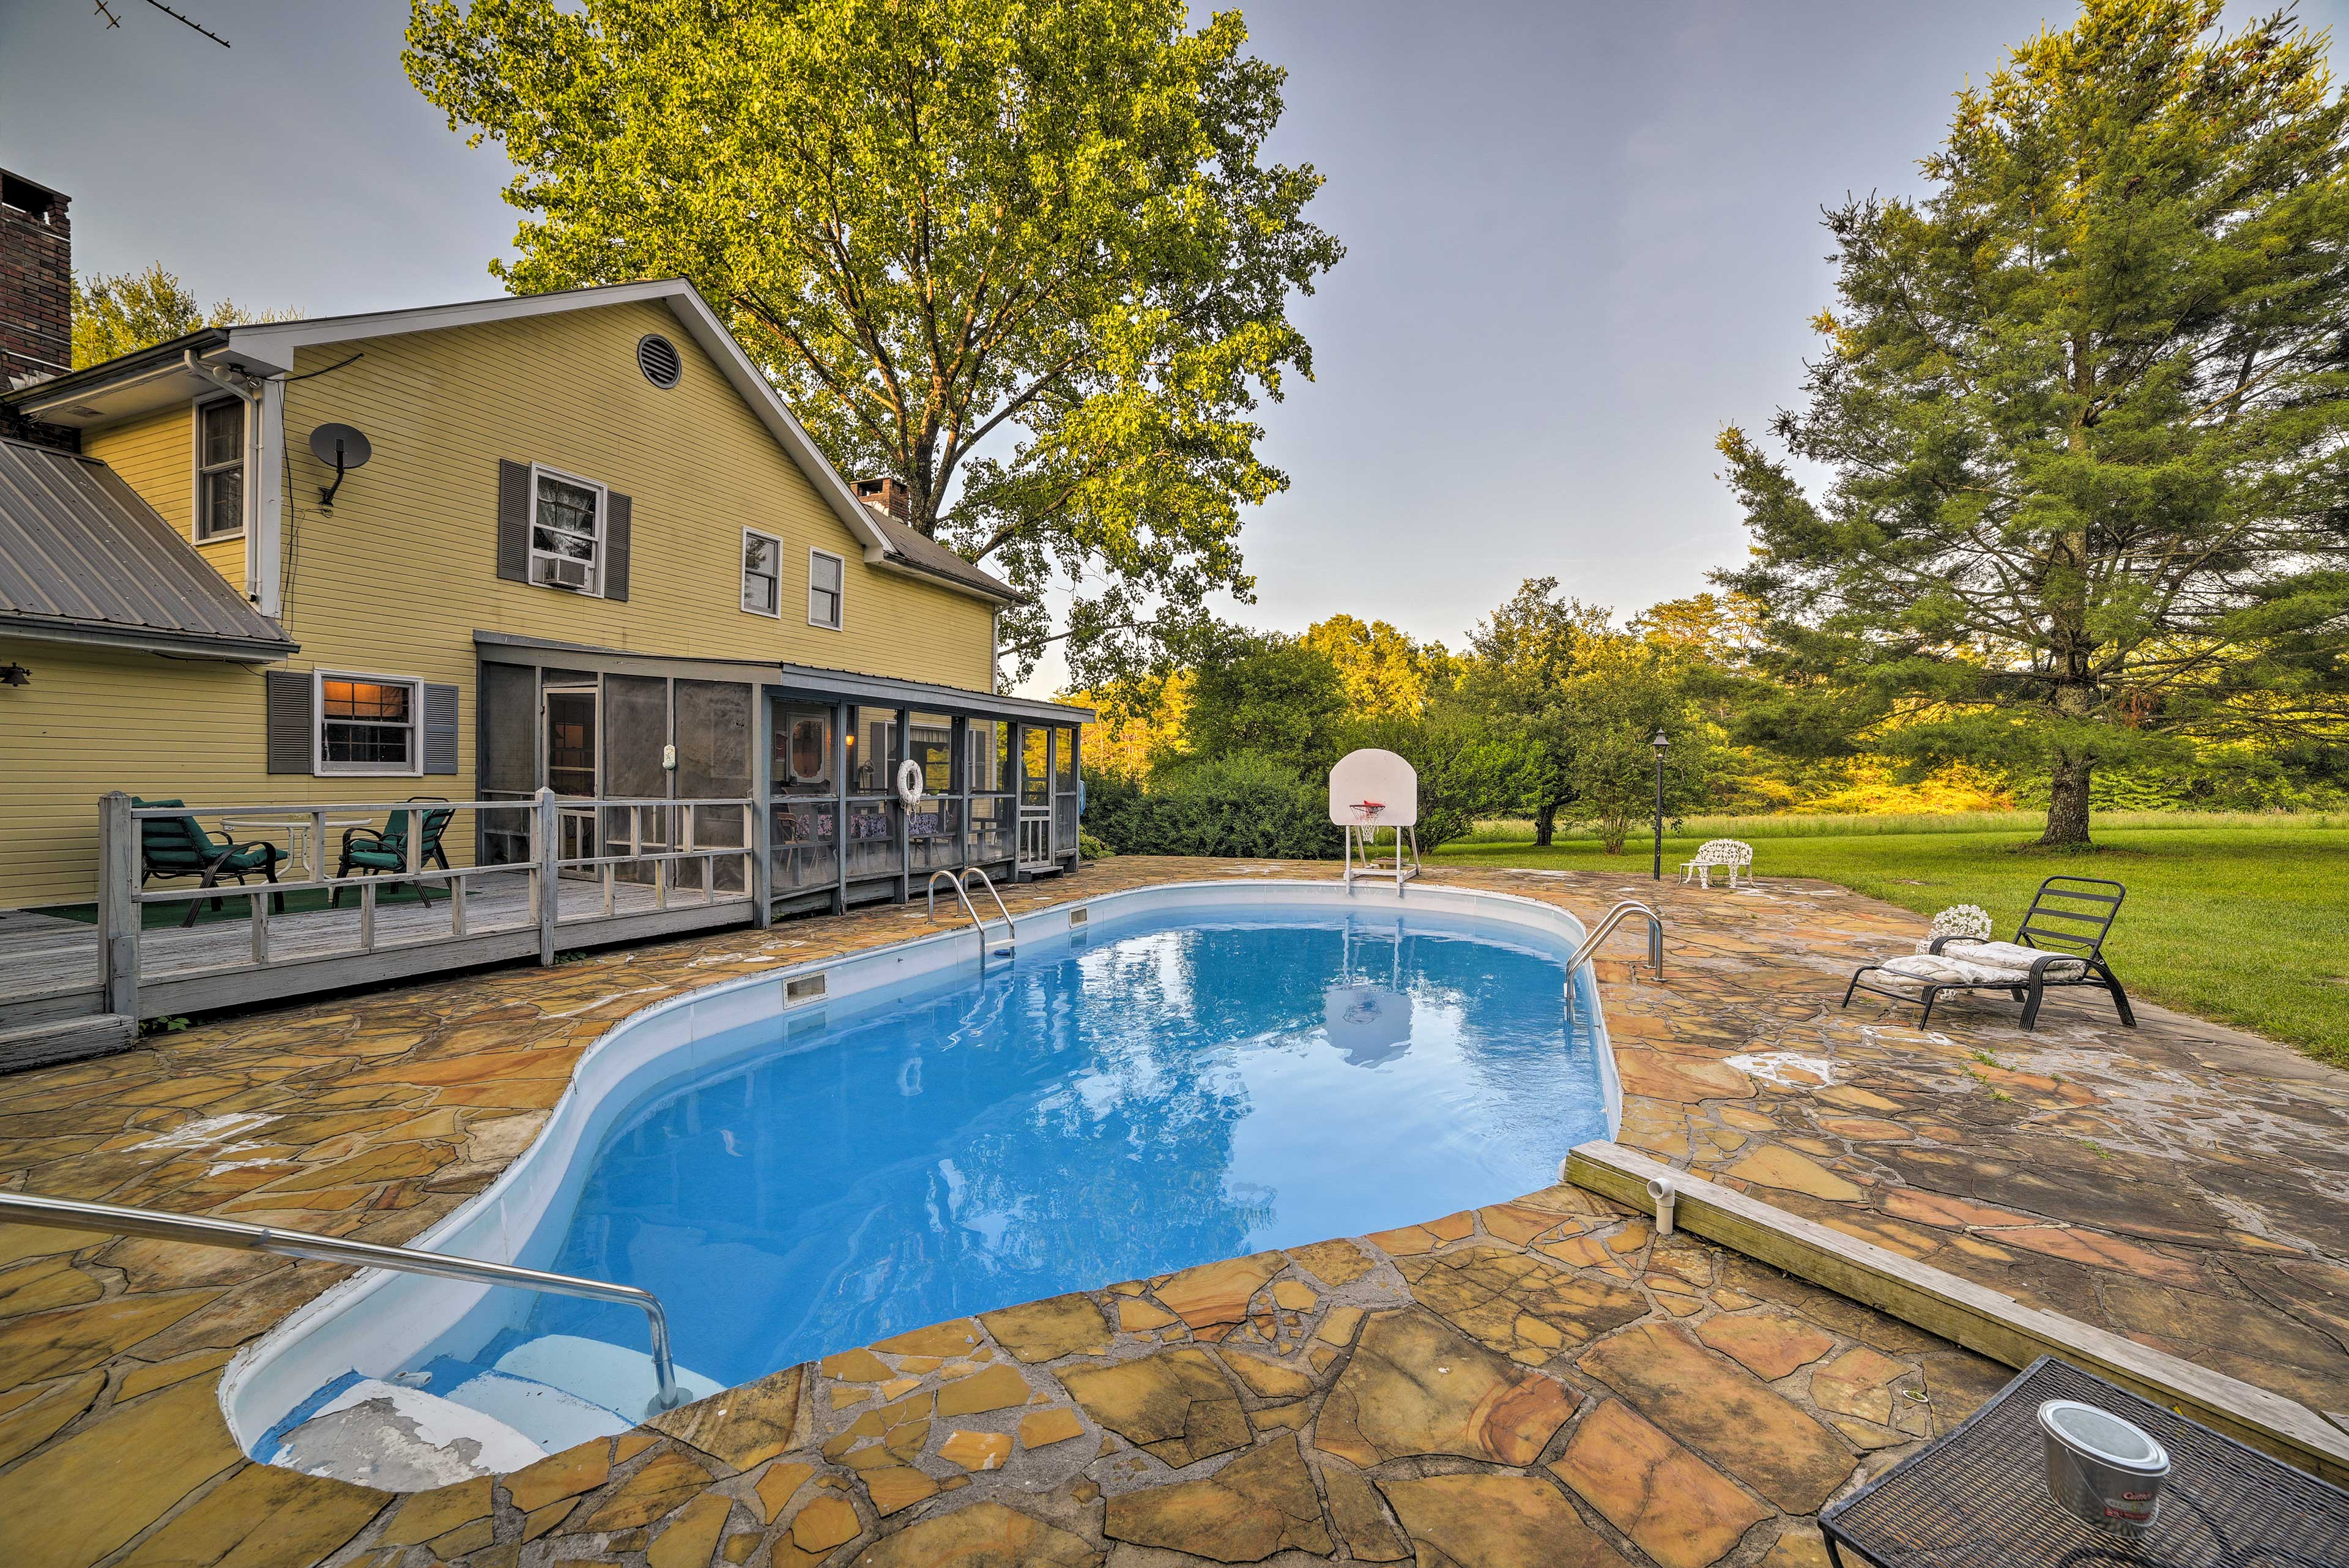 Book your Tennessee trip to this expansive 4-bedroom, 2.5-bath vacation rental!